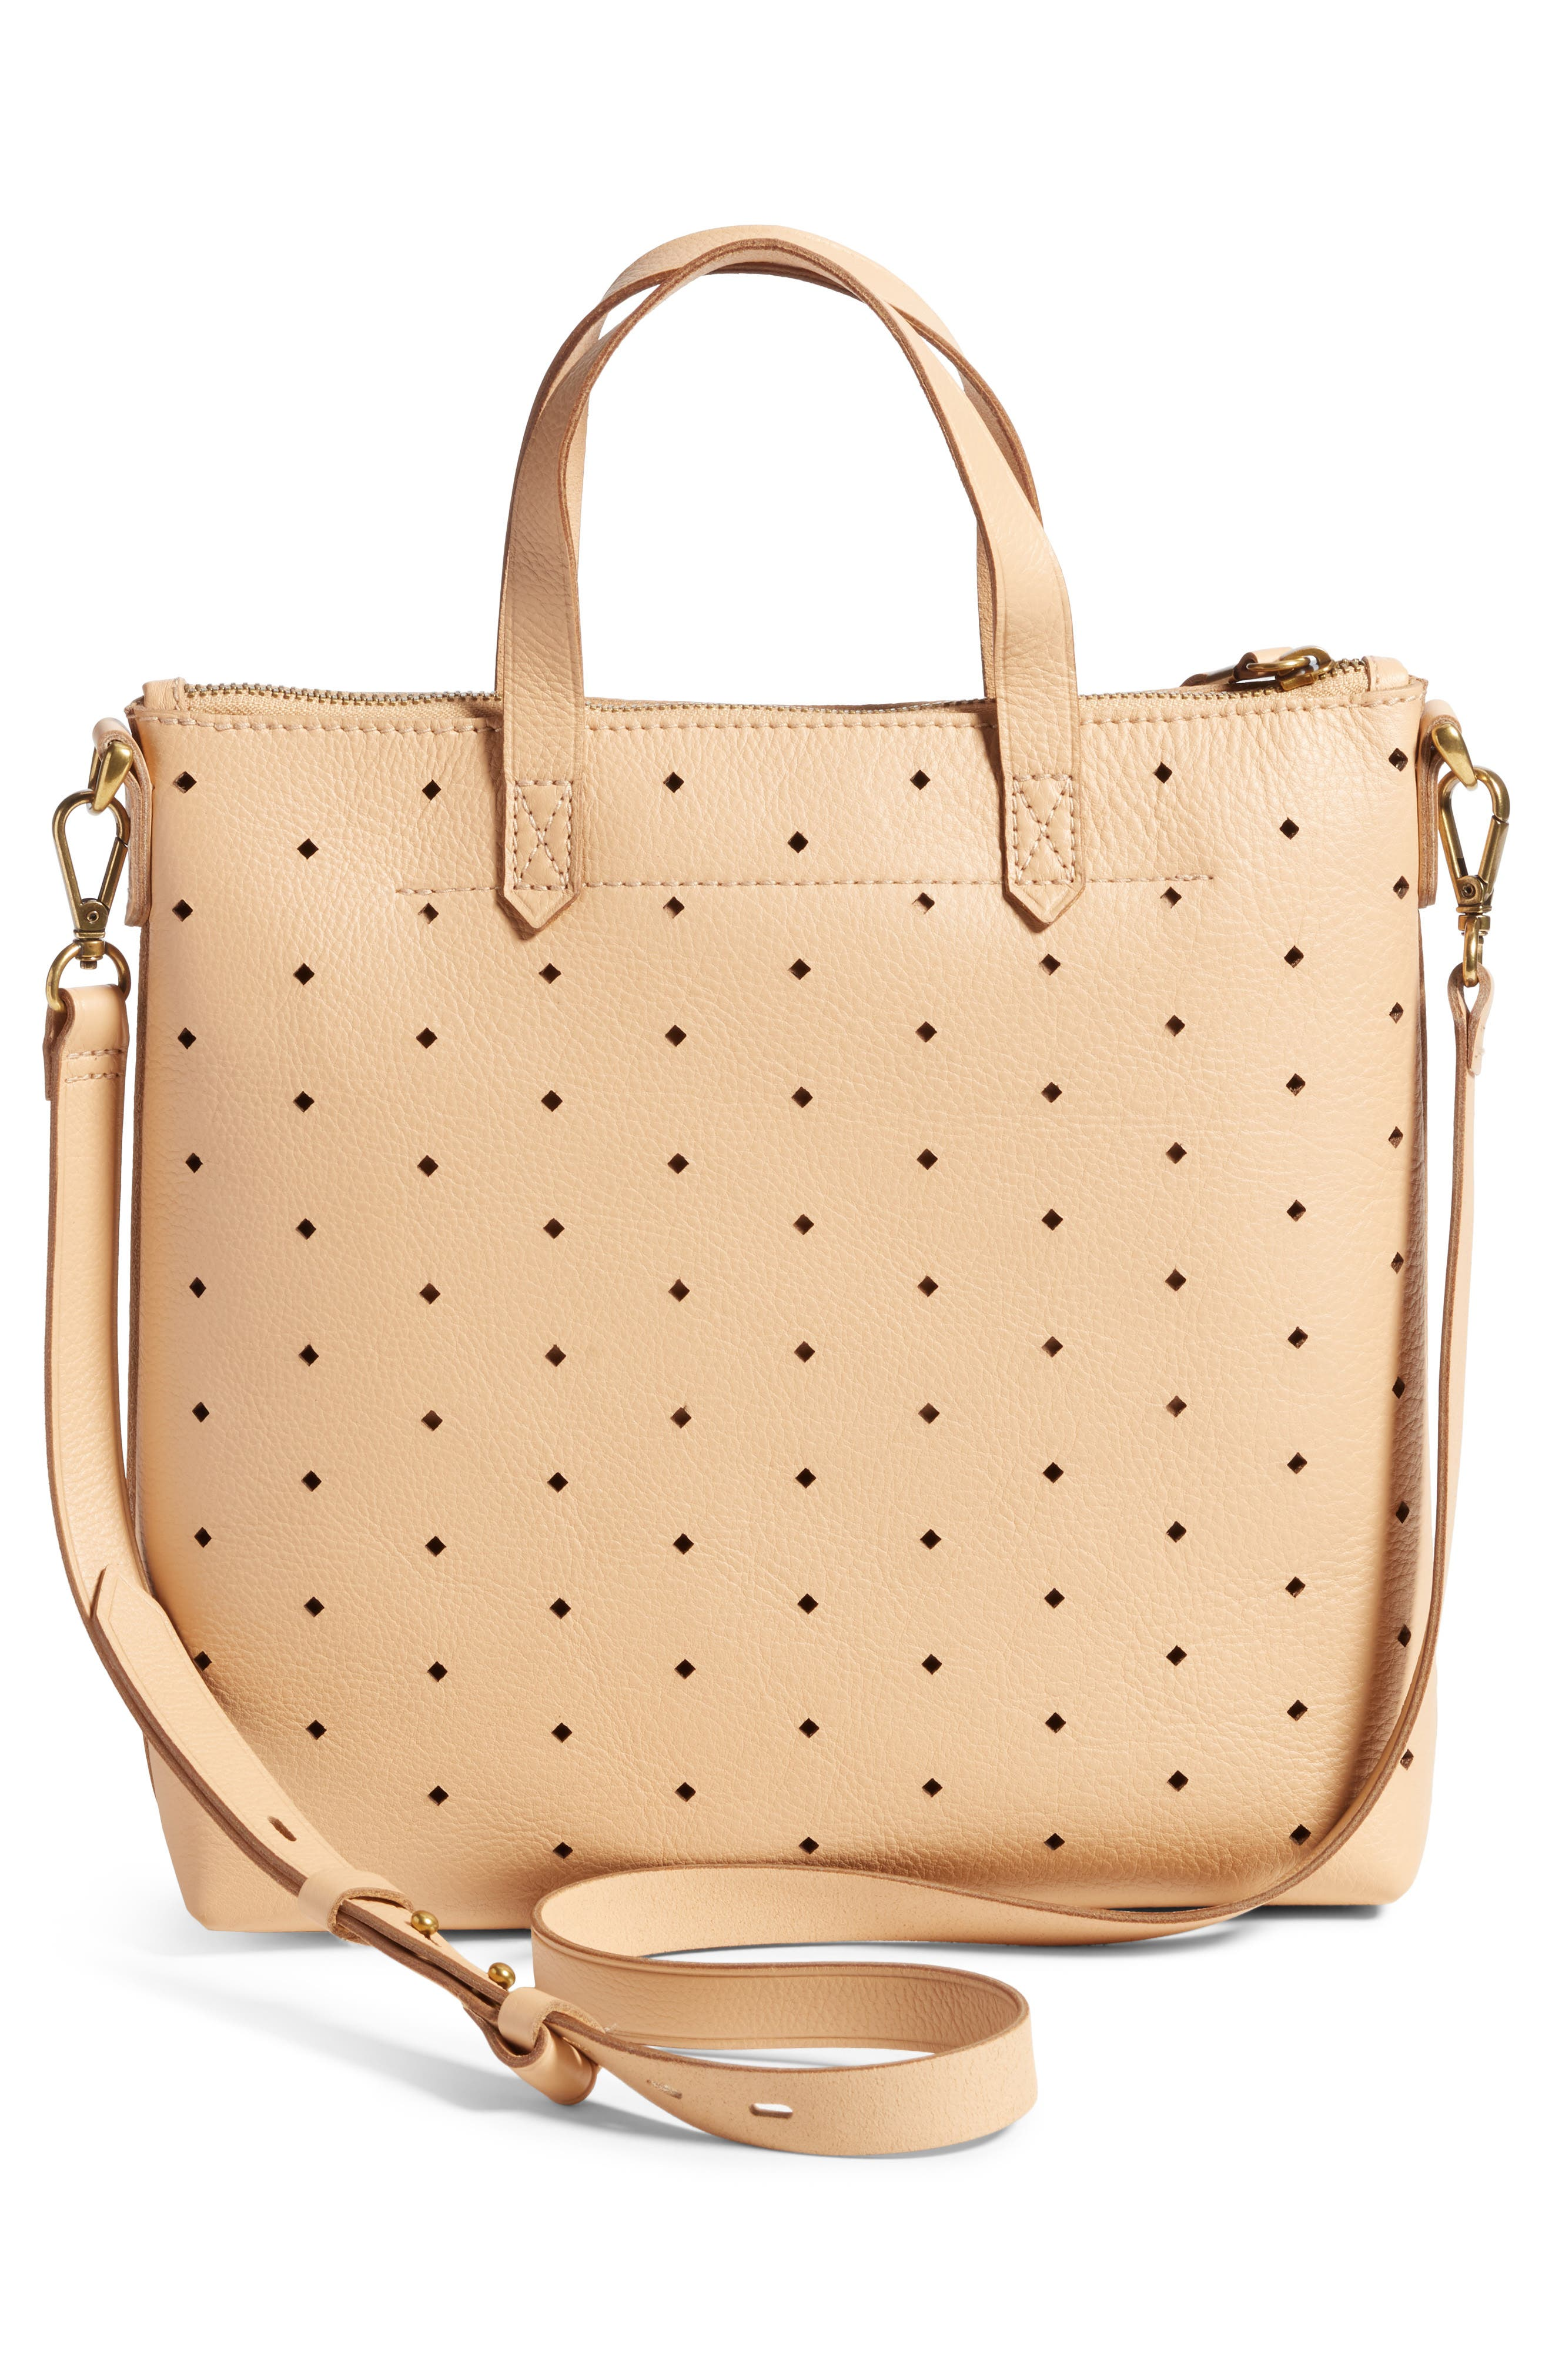 MADEWELL,                             Mini Transport Perforated Leather Crossbody Bag,                             Alternate thumbnail 3, color,                             250